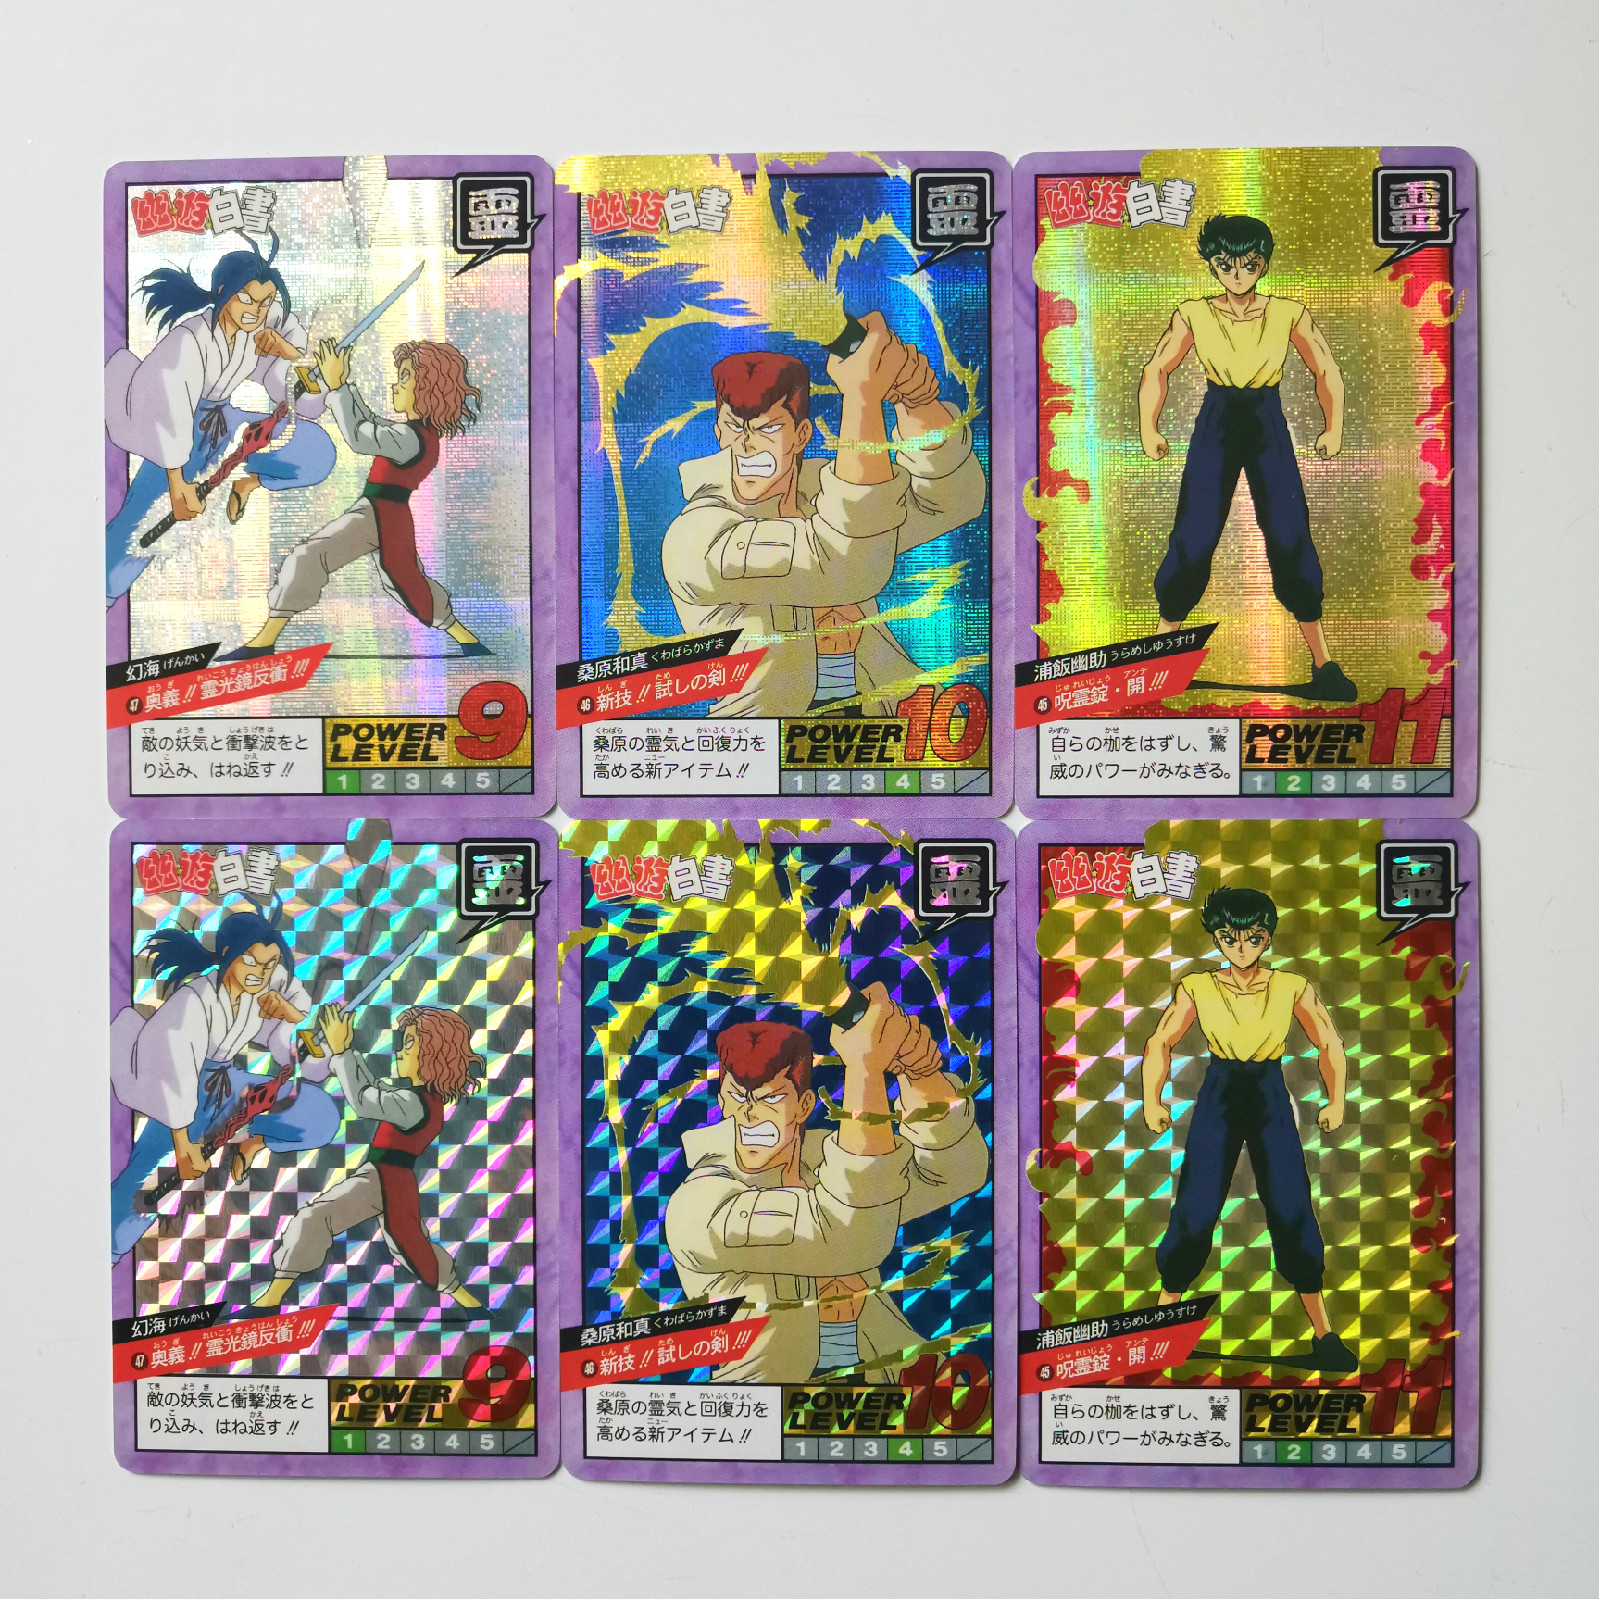 53pcs/set YuYu Hakusho Third Bomb Toys Hobbies Hobby Collectibles Game Collection Anime Cards